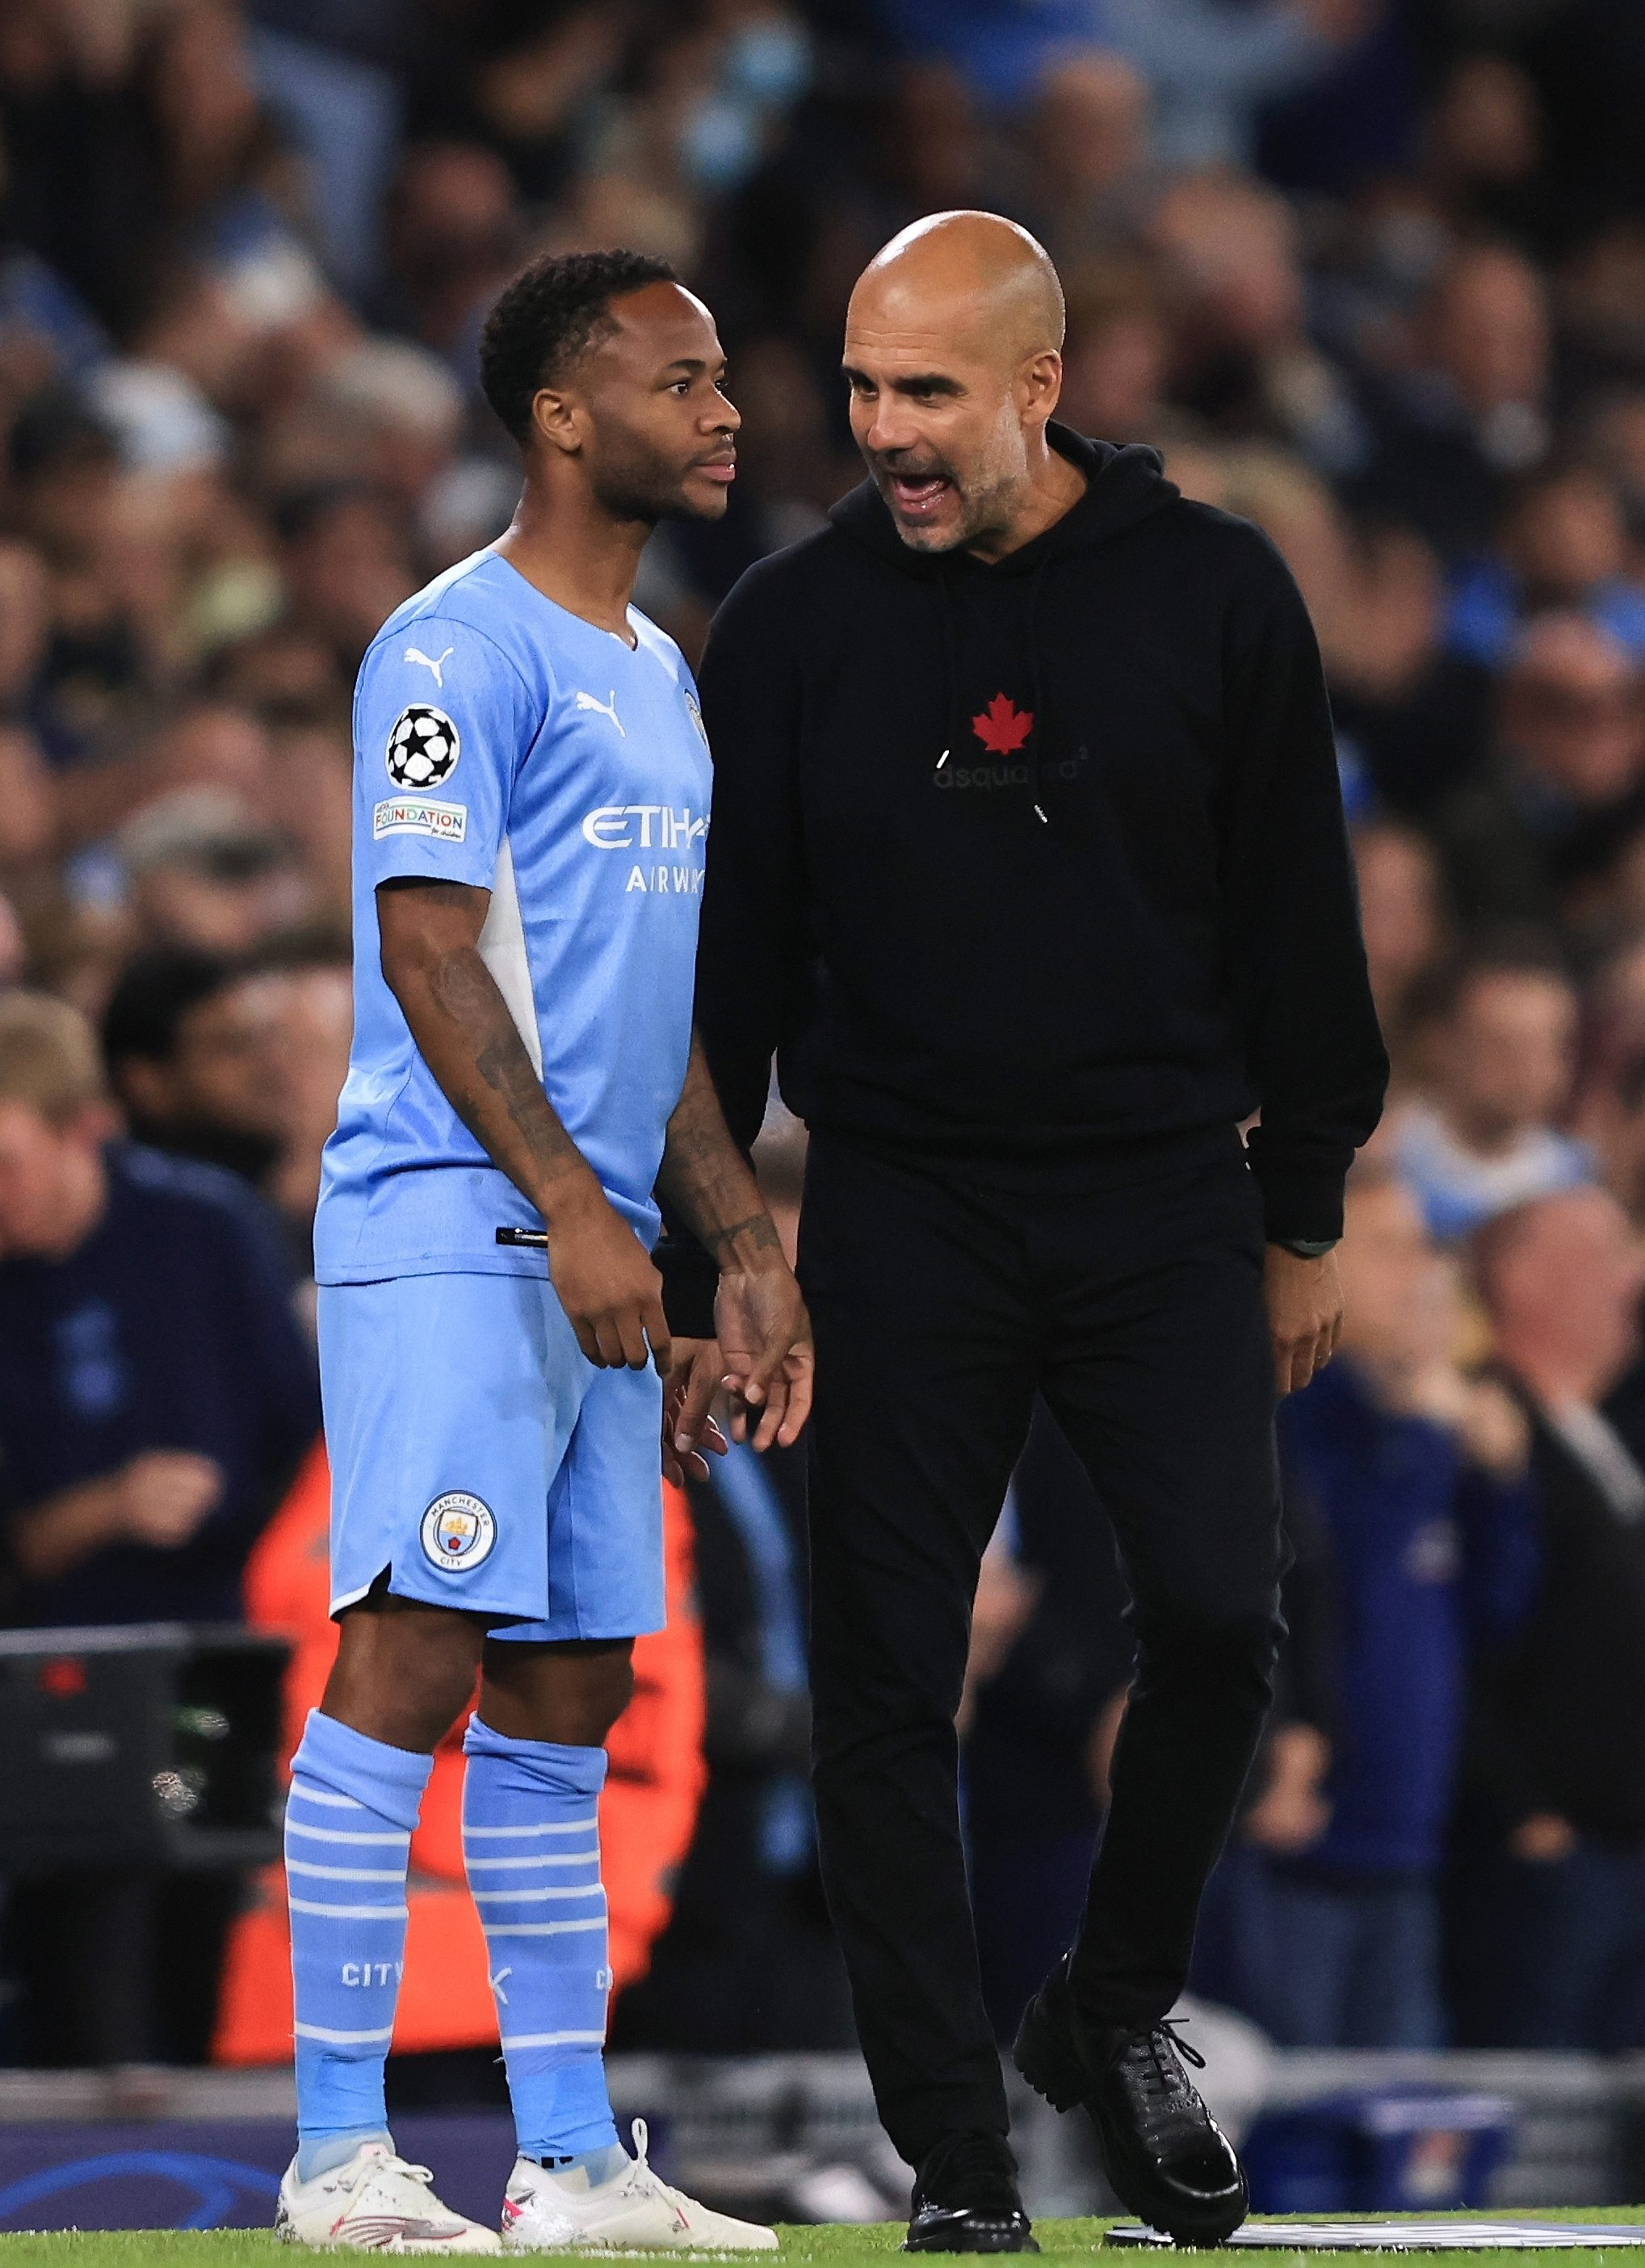 Sterling is facing an uncertain future at Man City over his lack of game time under Guardiola